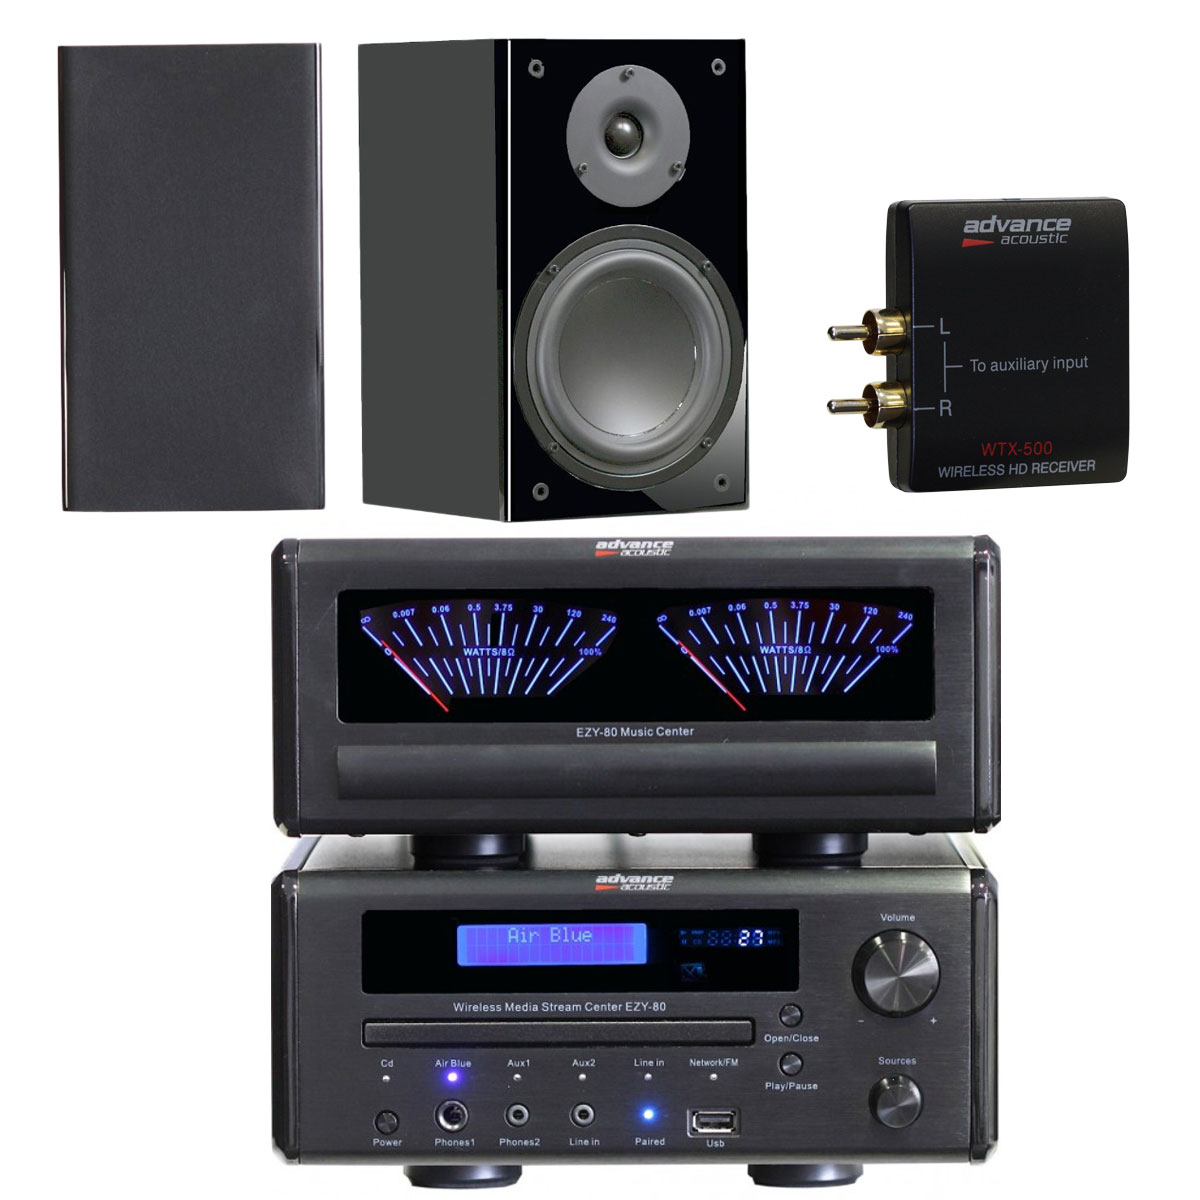 Meuble Chaine Hifi Advance Acoustic Ezy 80 + Advance Acoustic K1 + Advance